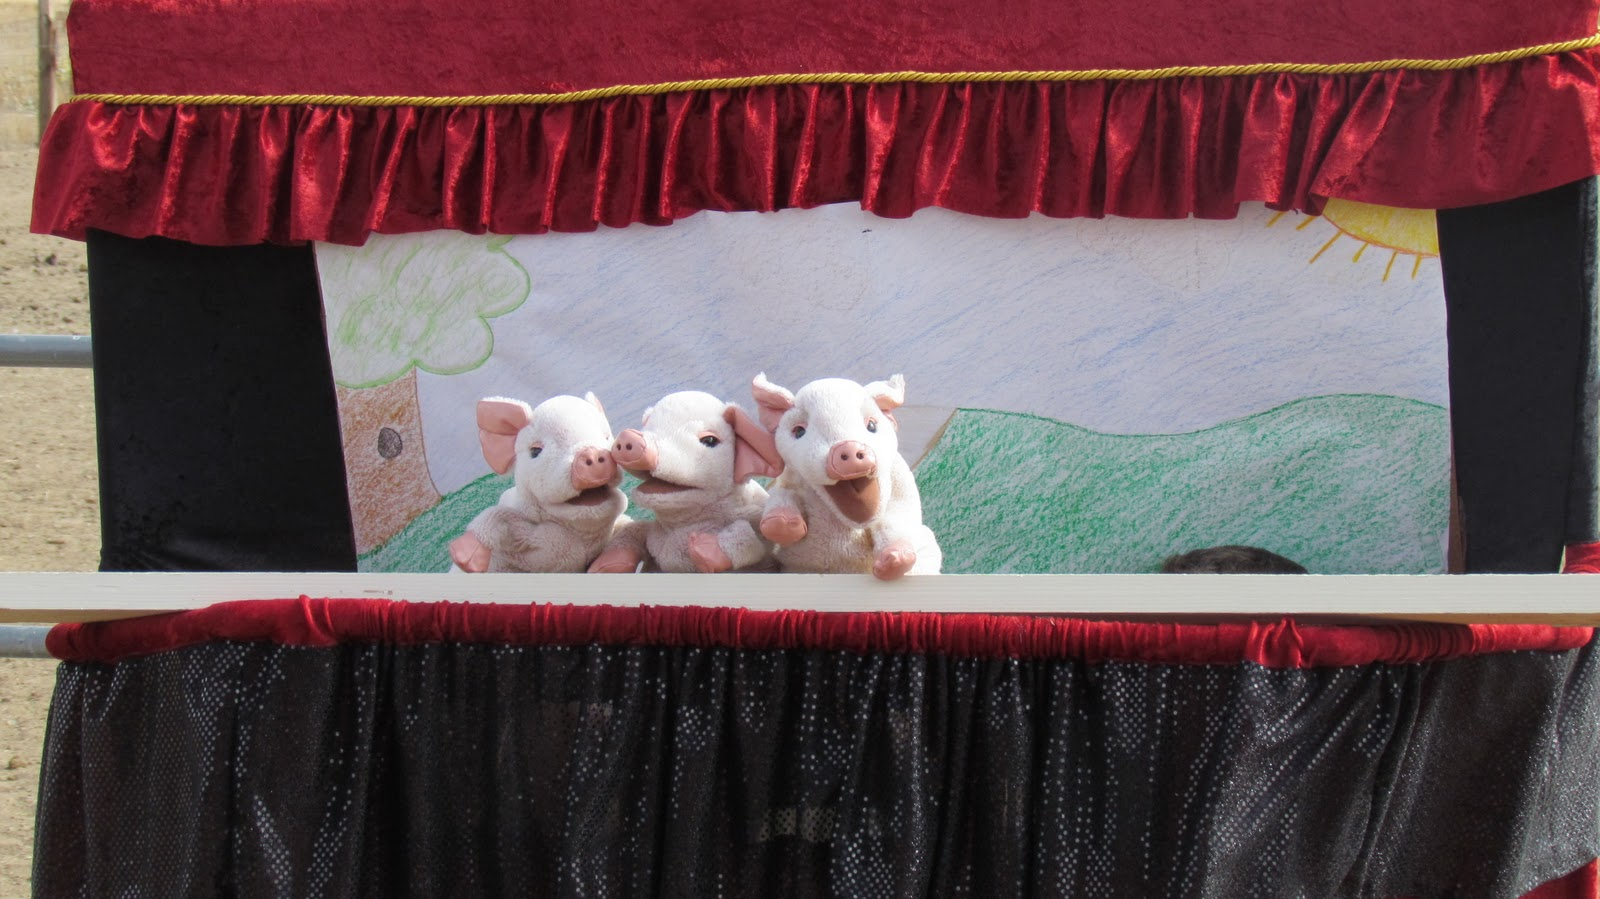 puppet shows 23 results  music and puppet shows for children in dc, maryland and northern virginia.